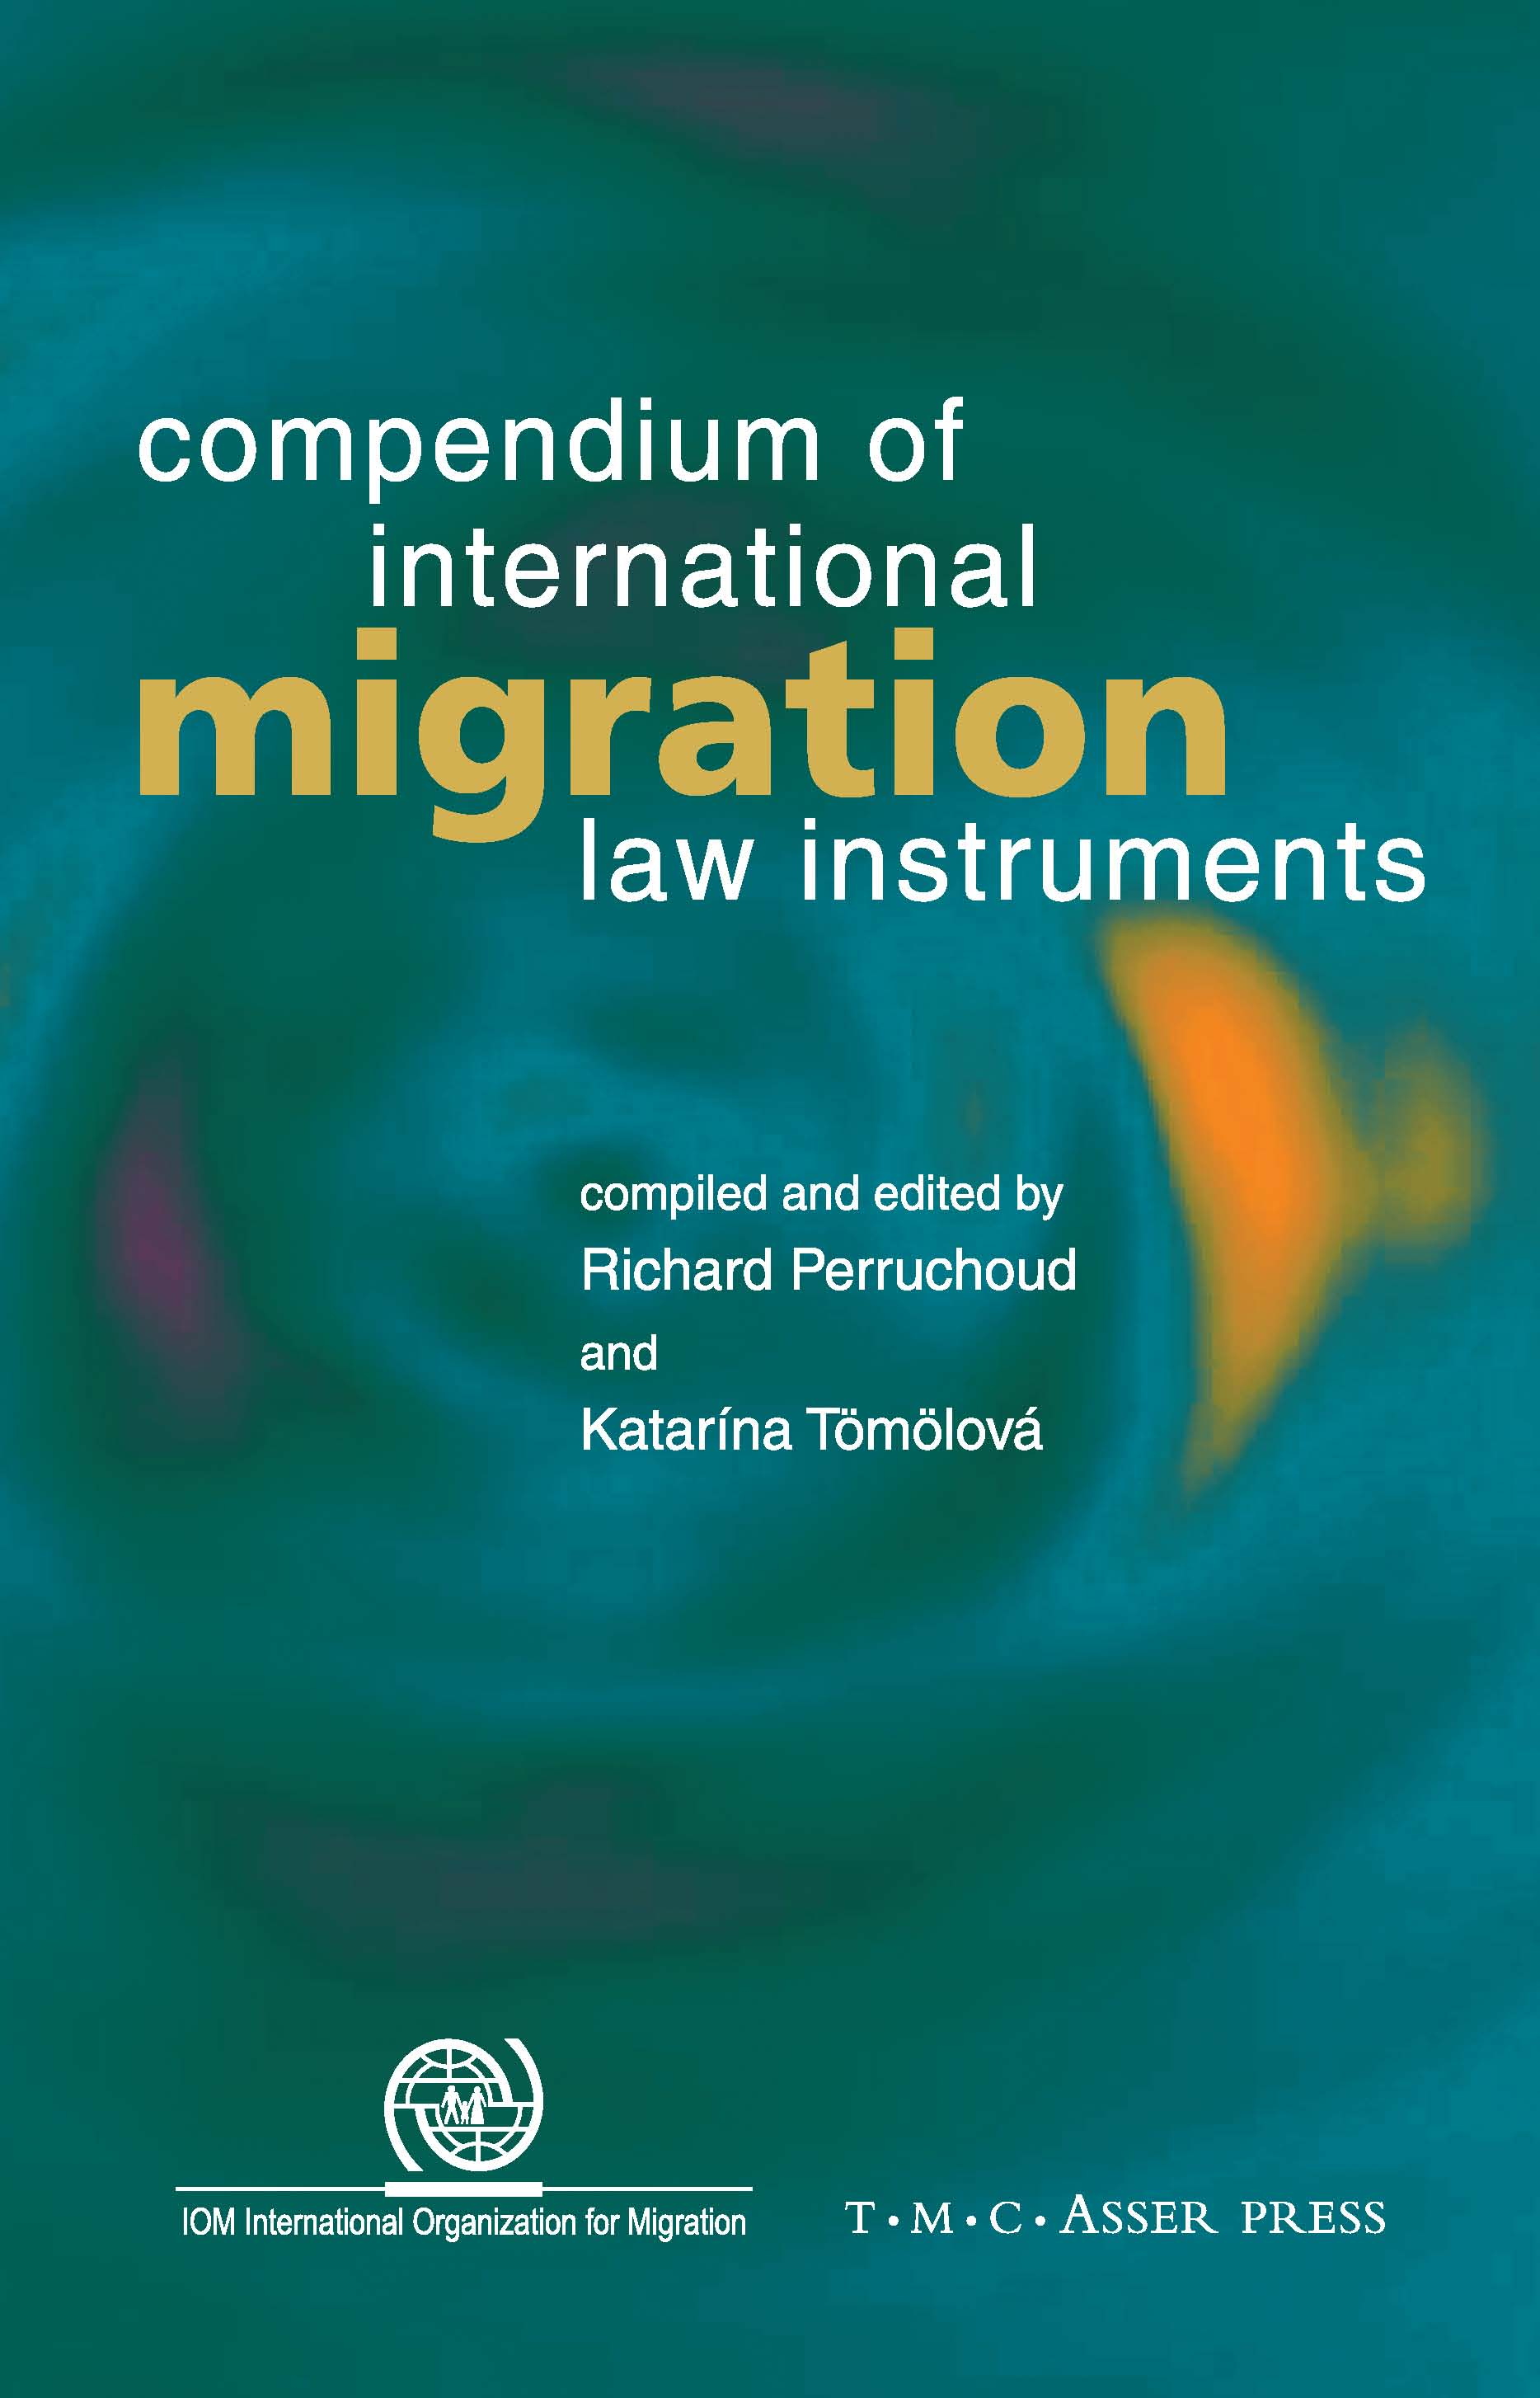 Compendium of International Migration Law Instruments